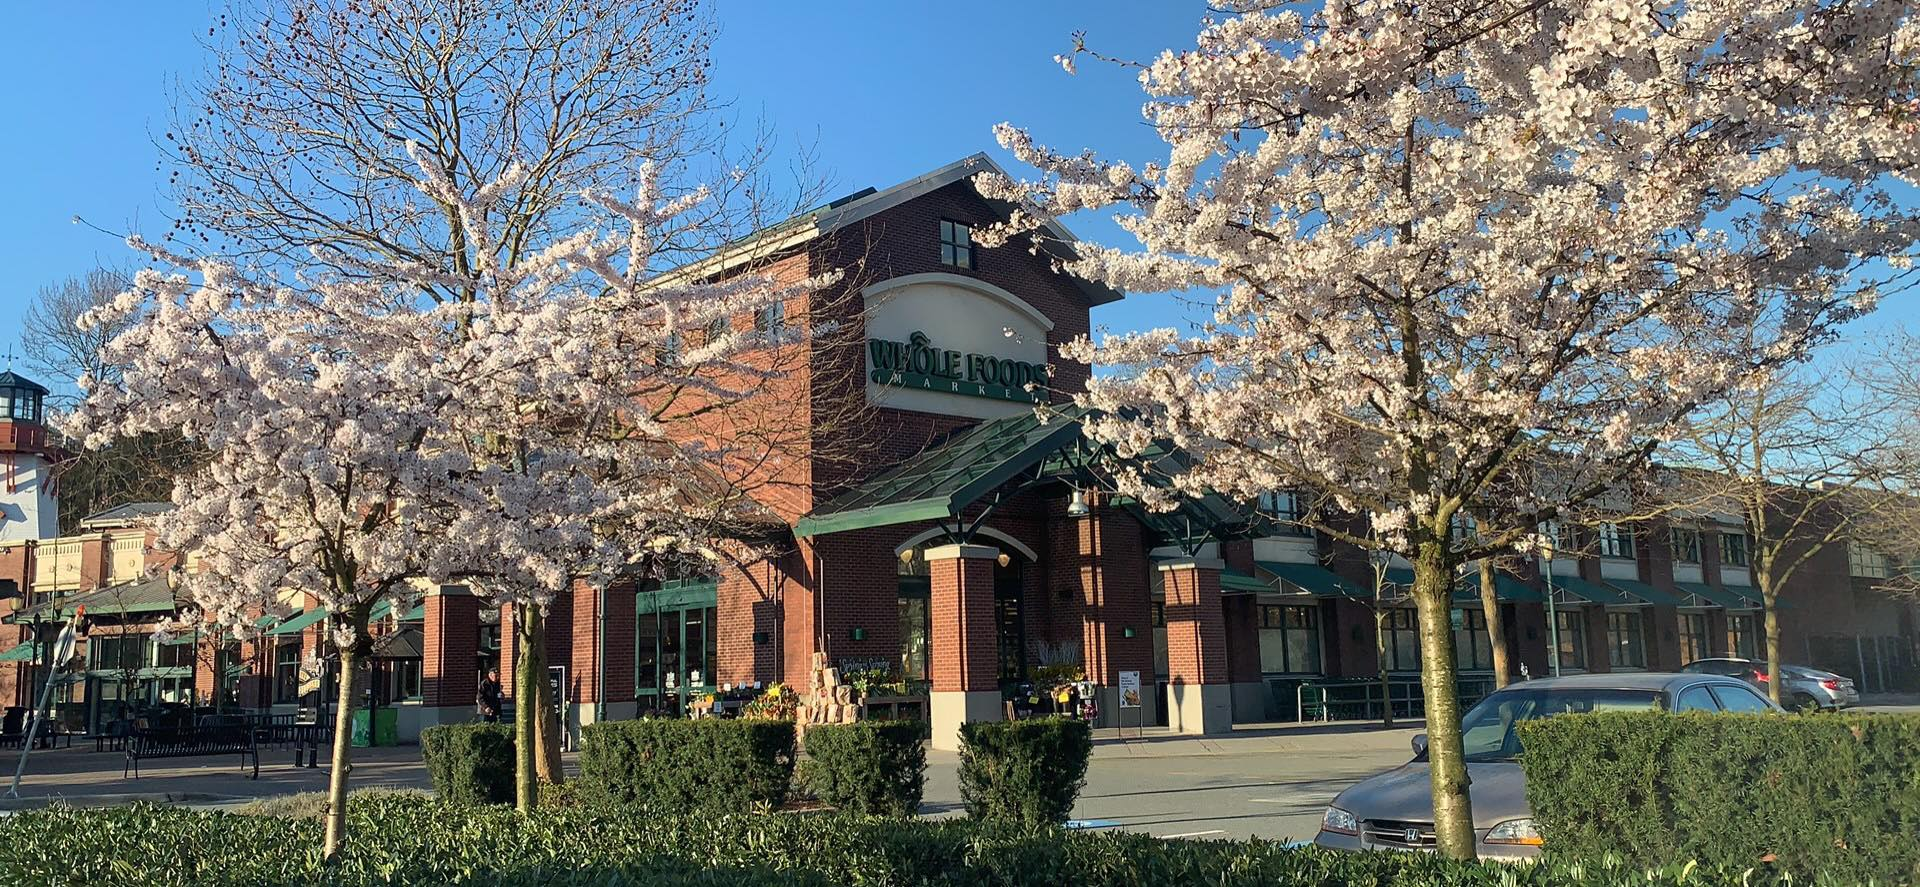 Whole Foods Market (within The Village at Park Royal)